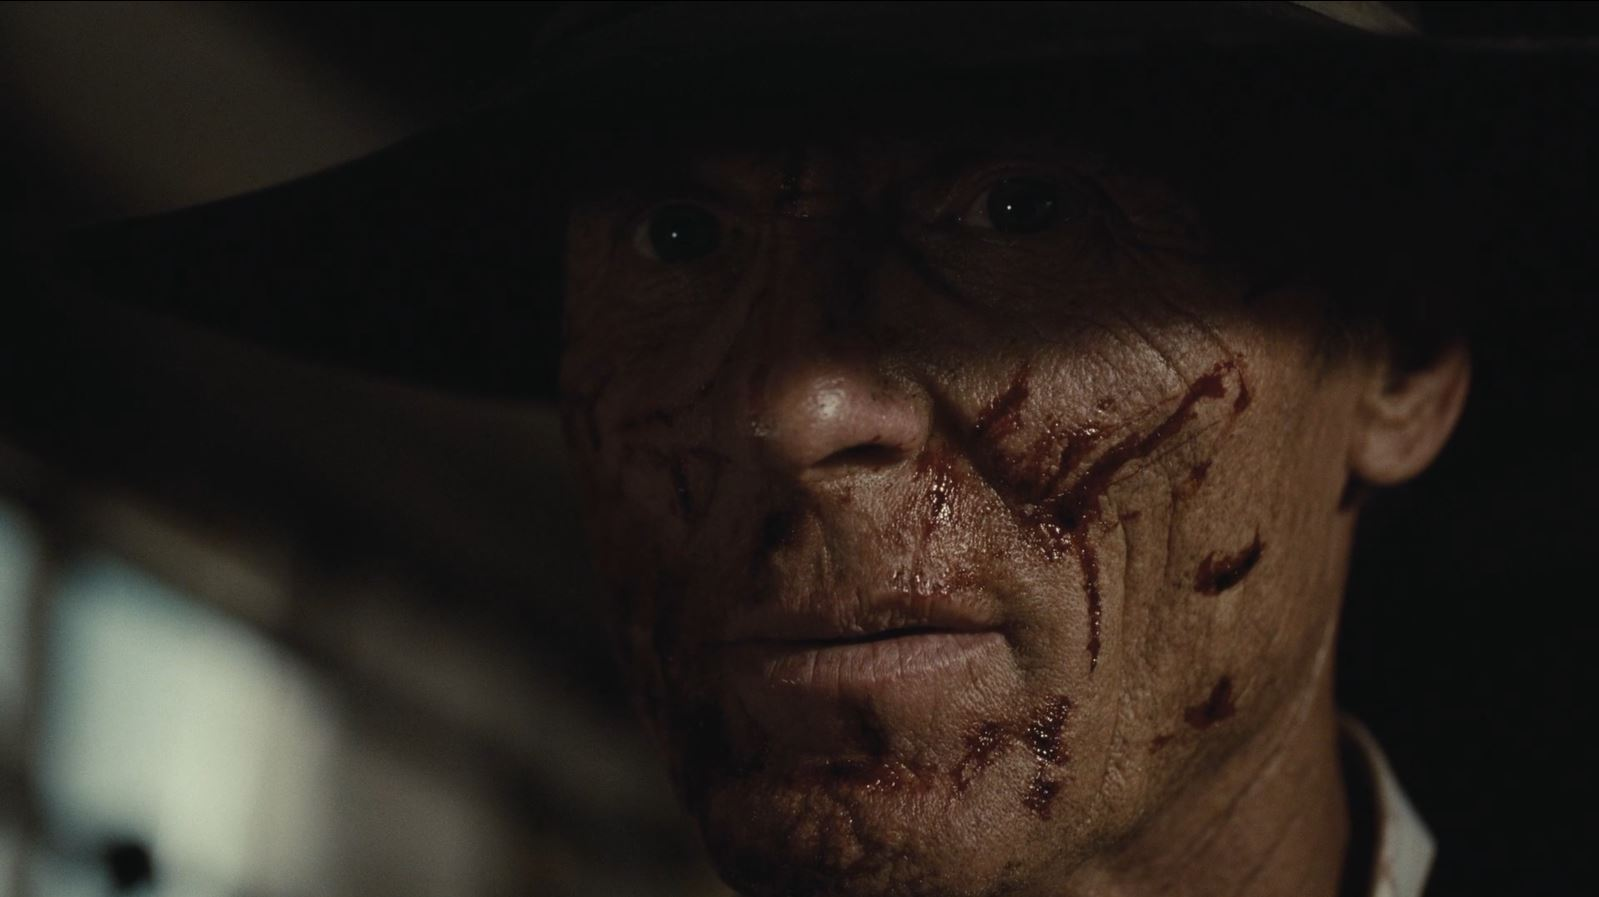 Westworld S02E01 Journey into Night Review - Ed Harris as the Man In Black smiling